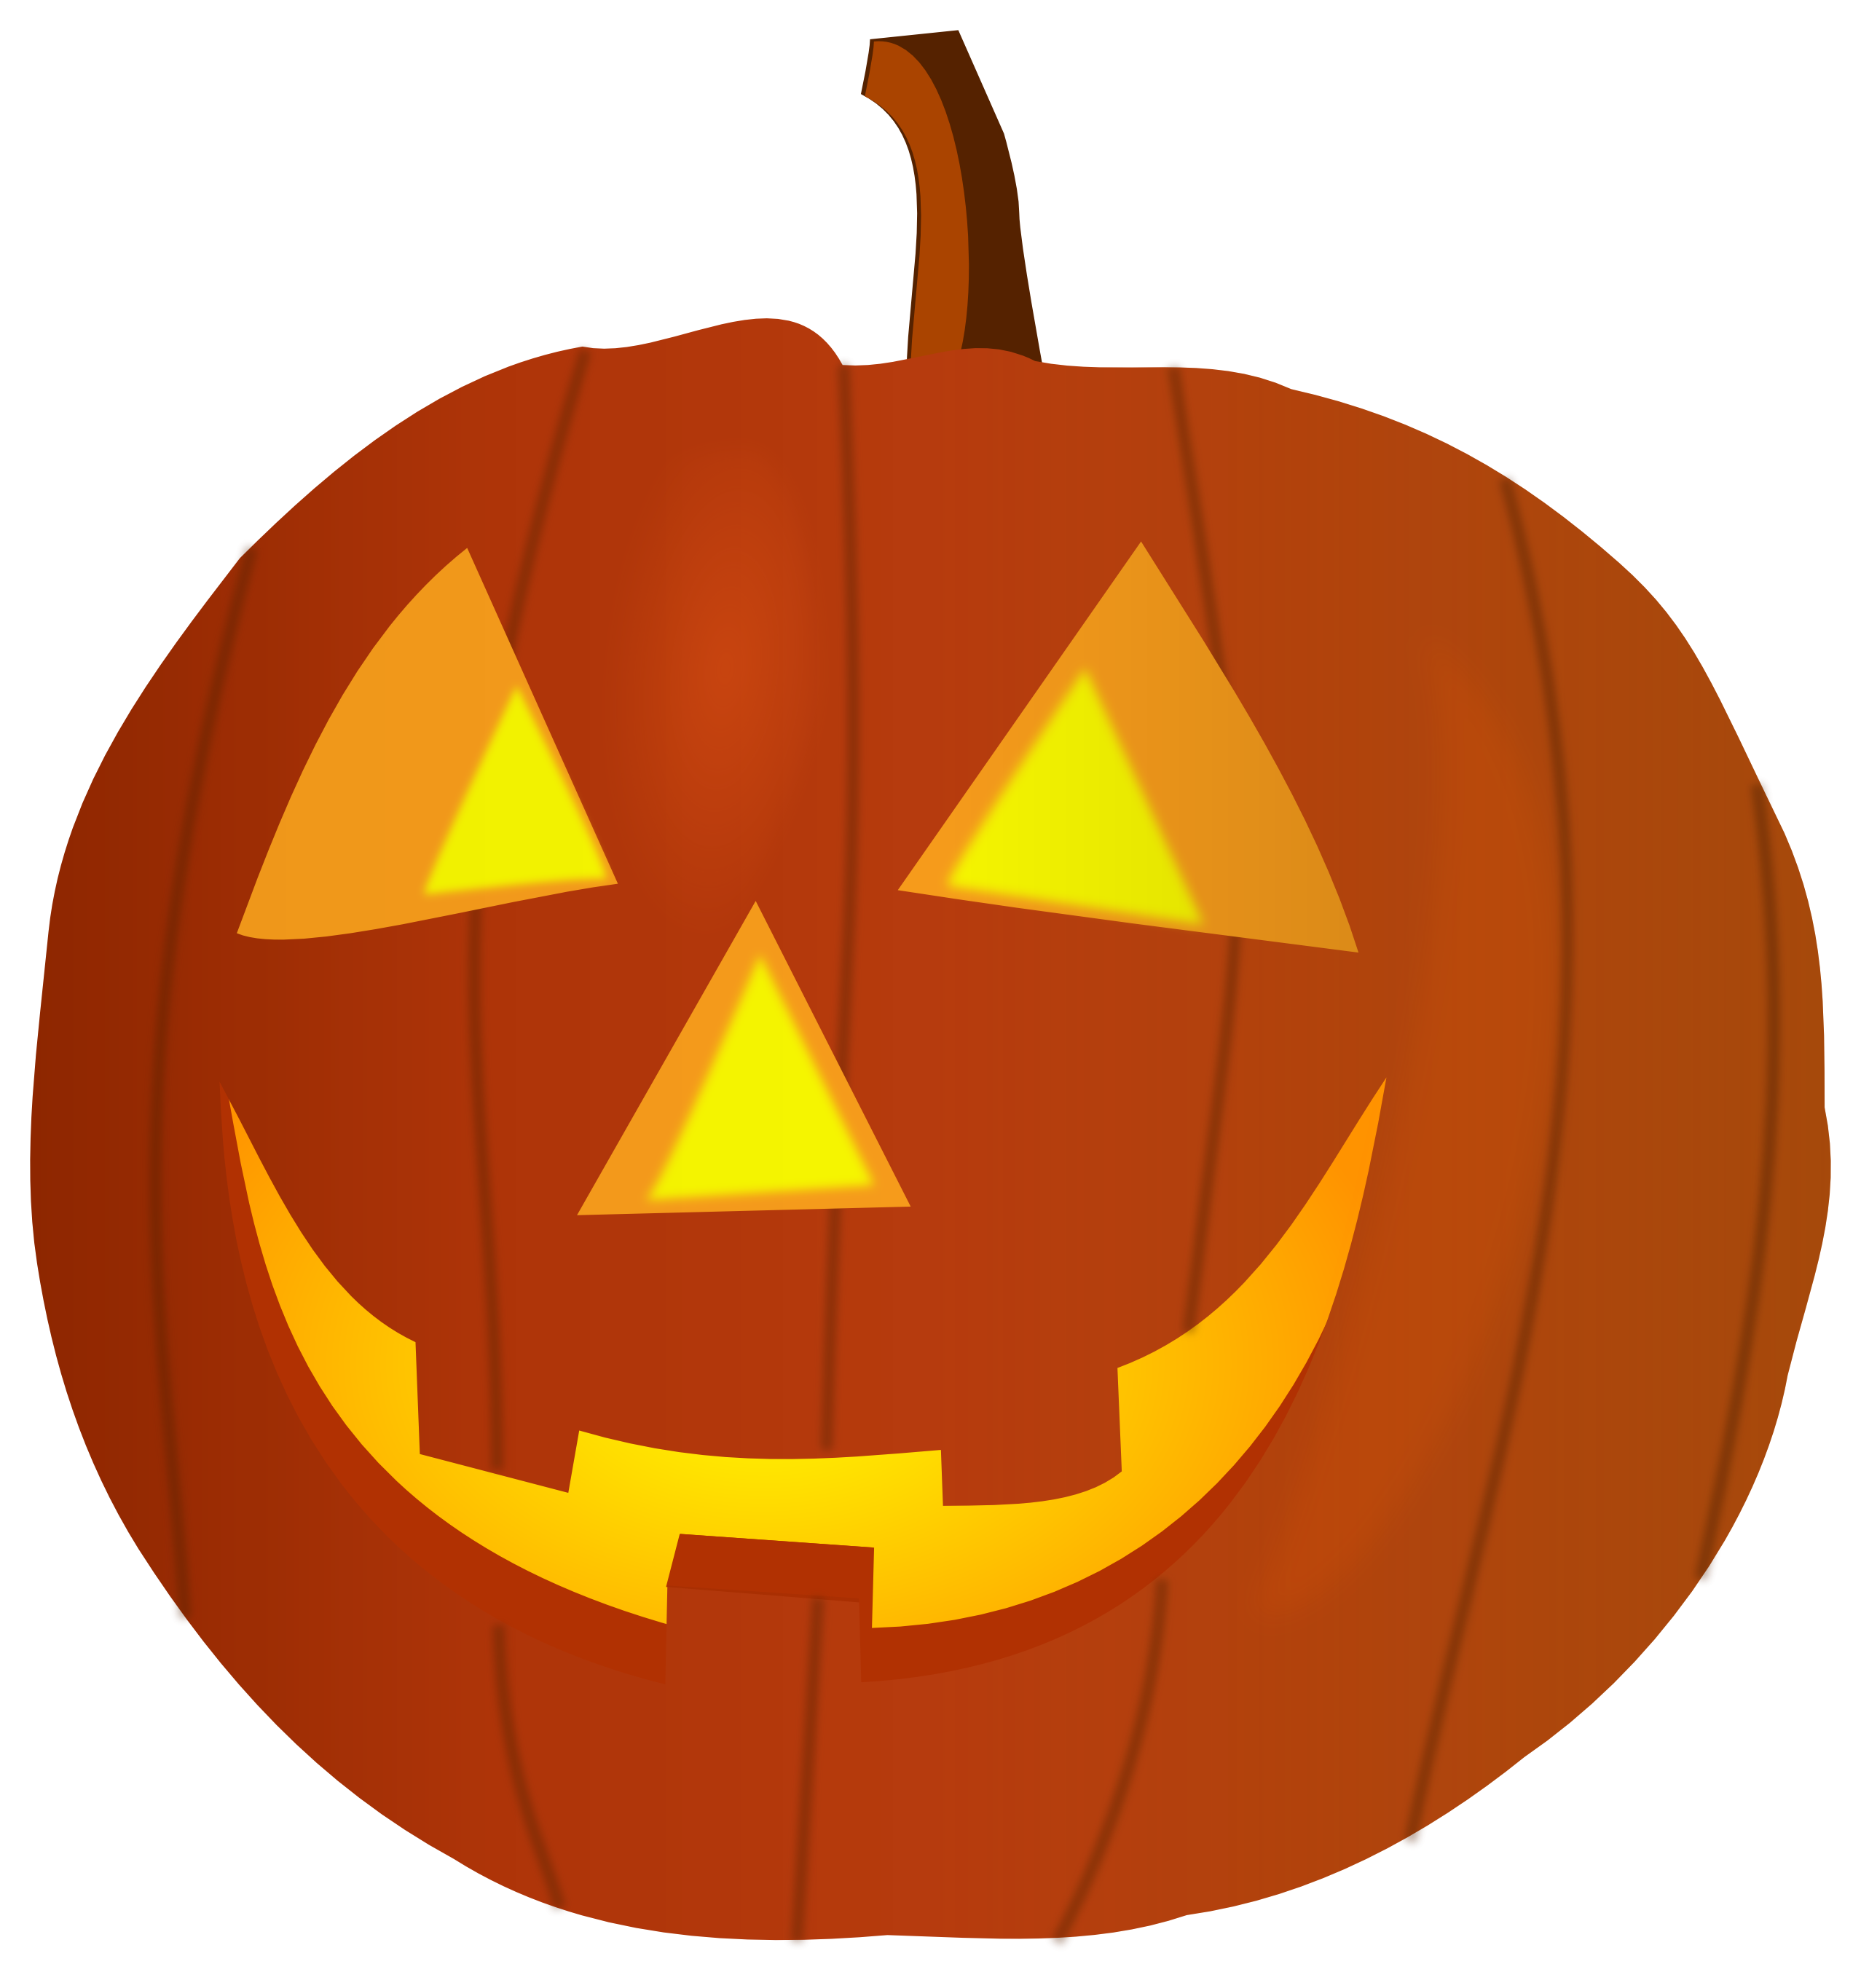 Scared pumpkin clipart png 28+ Collection of Halloween Pumpkin Face Clipart | High quality ... png